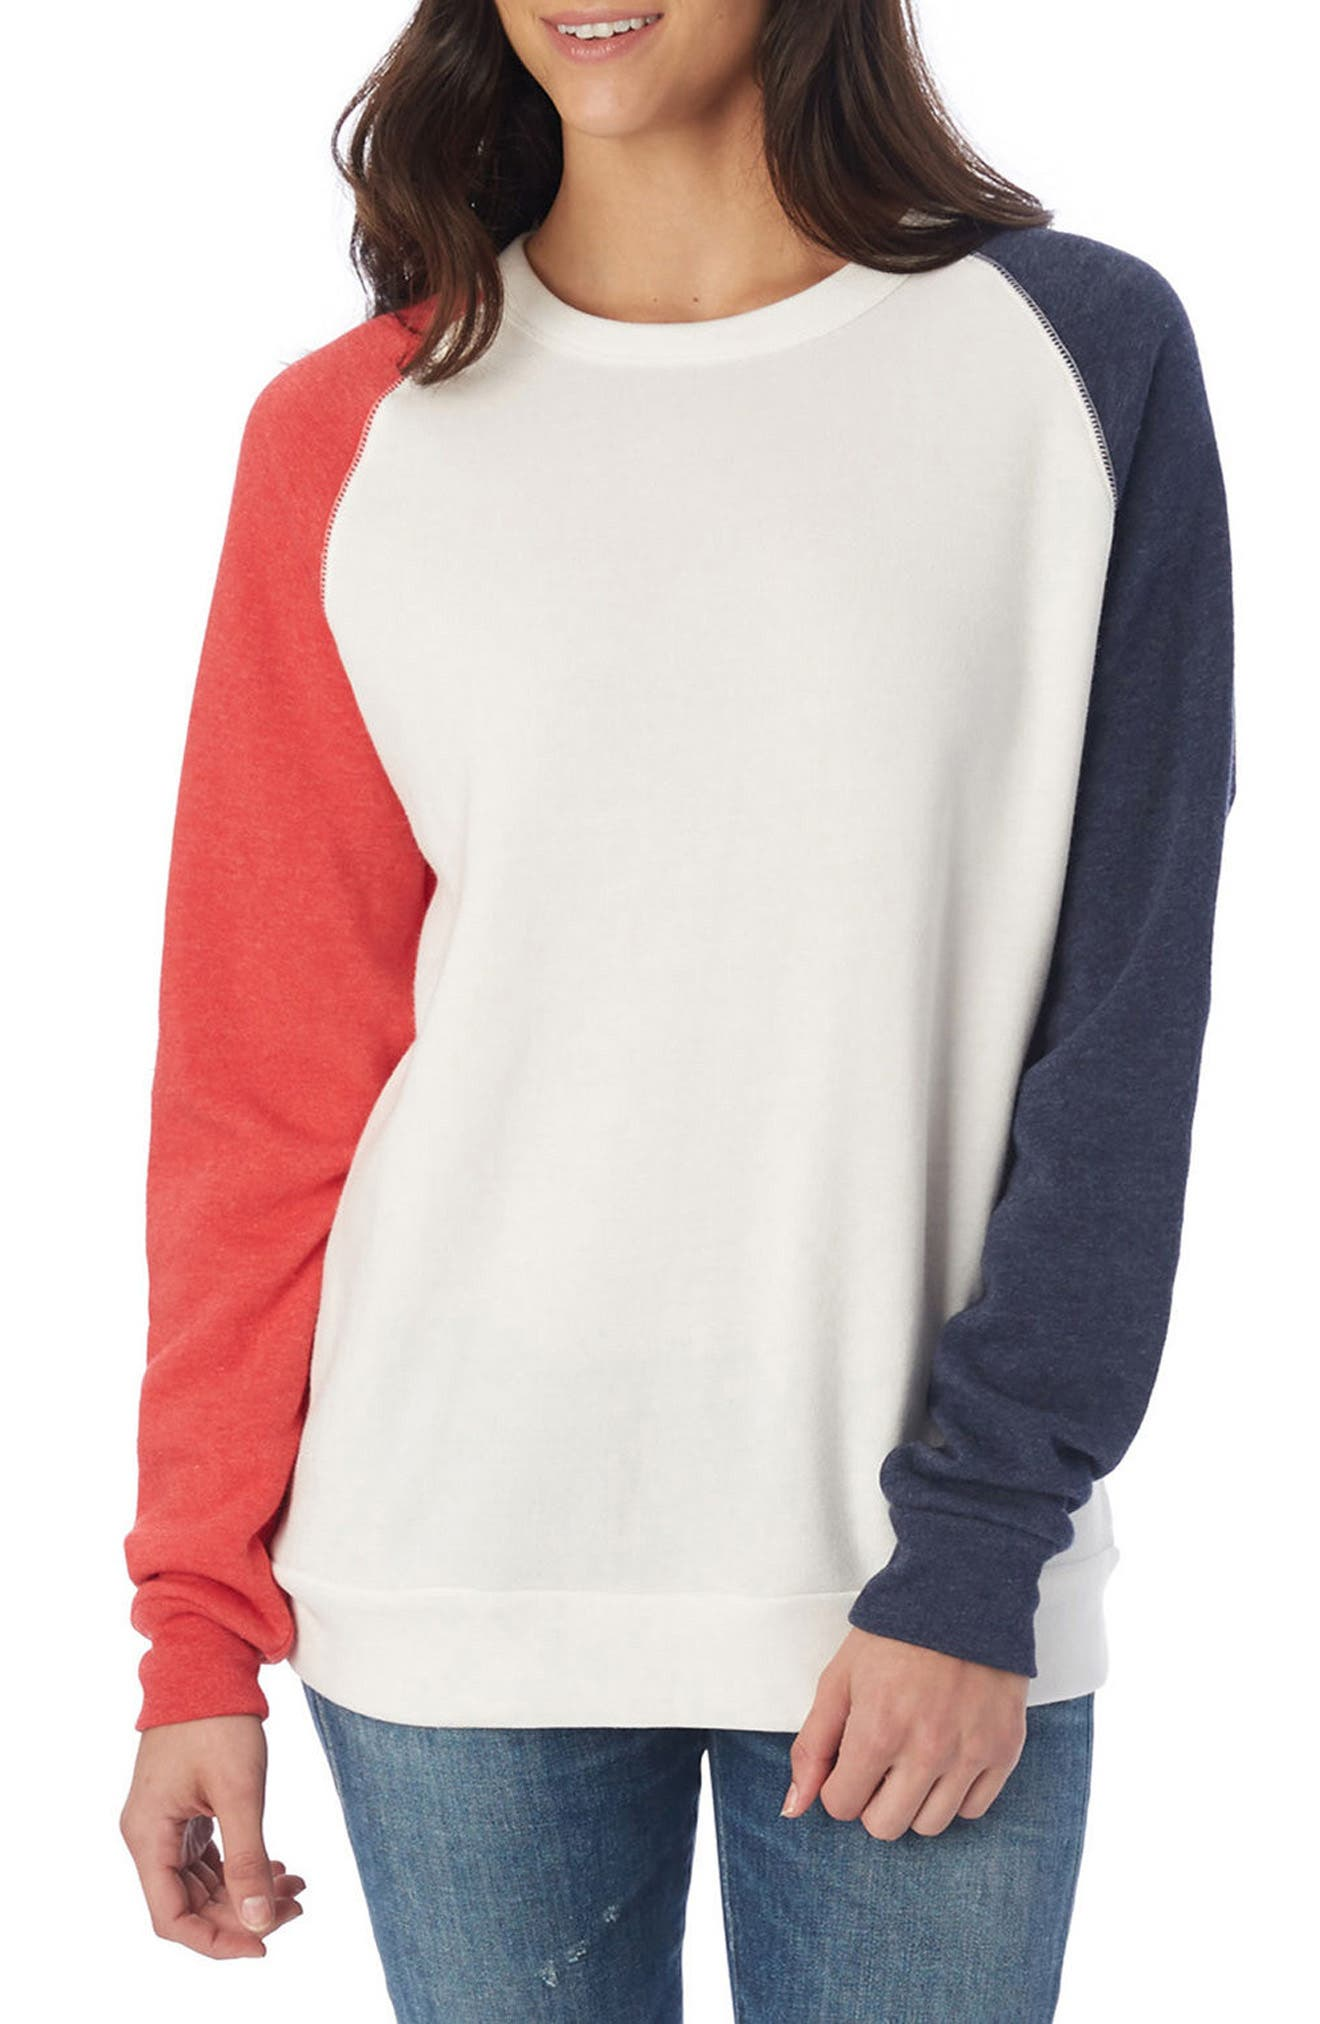 USA Champ Sweatshirt,                         Main,                         color, 905